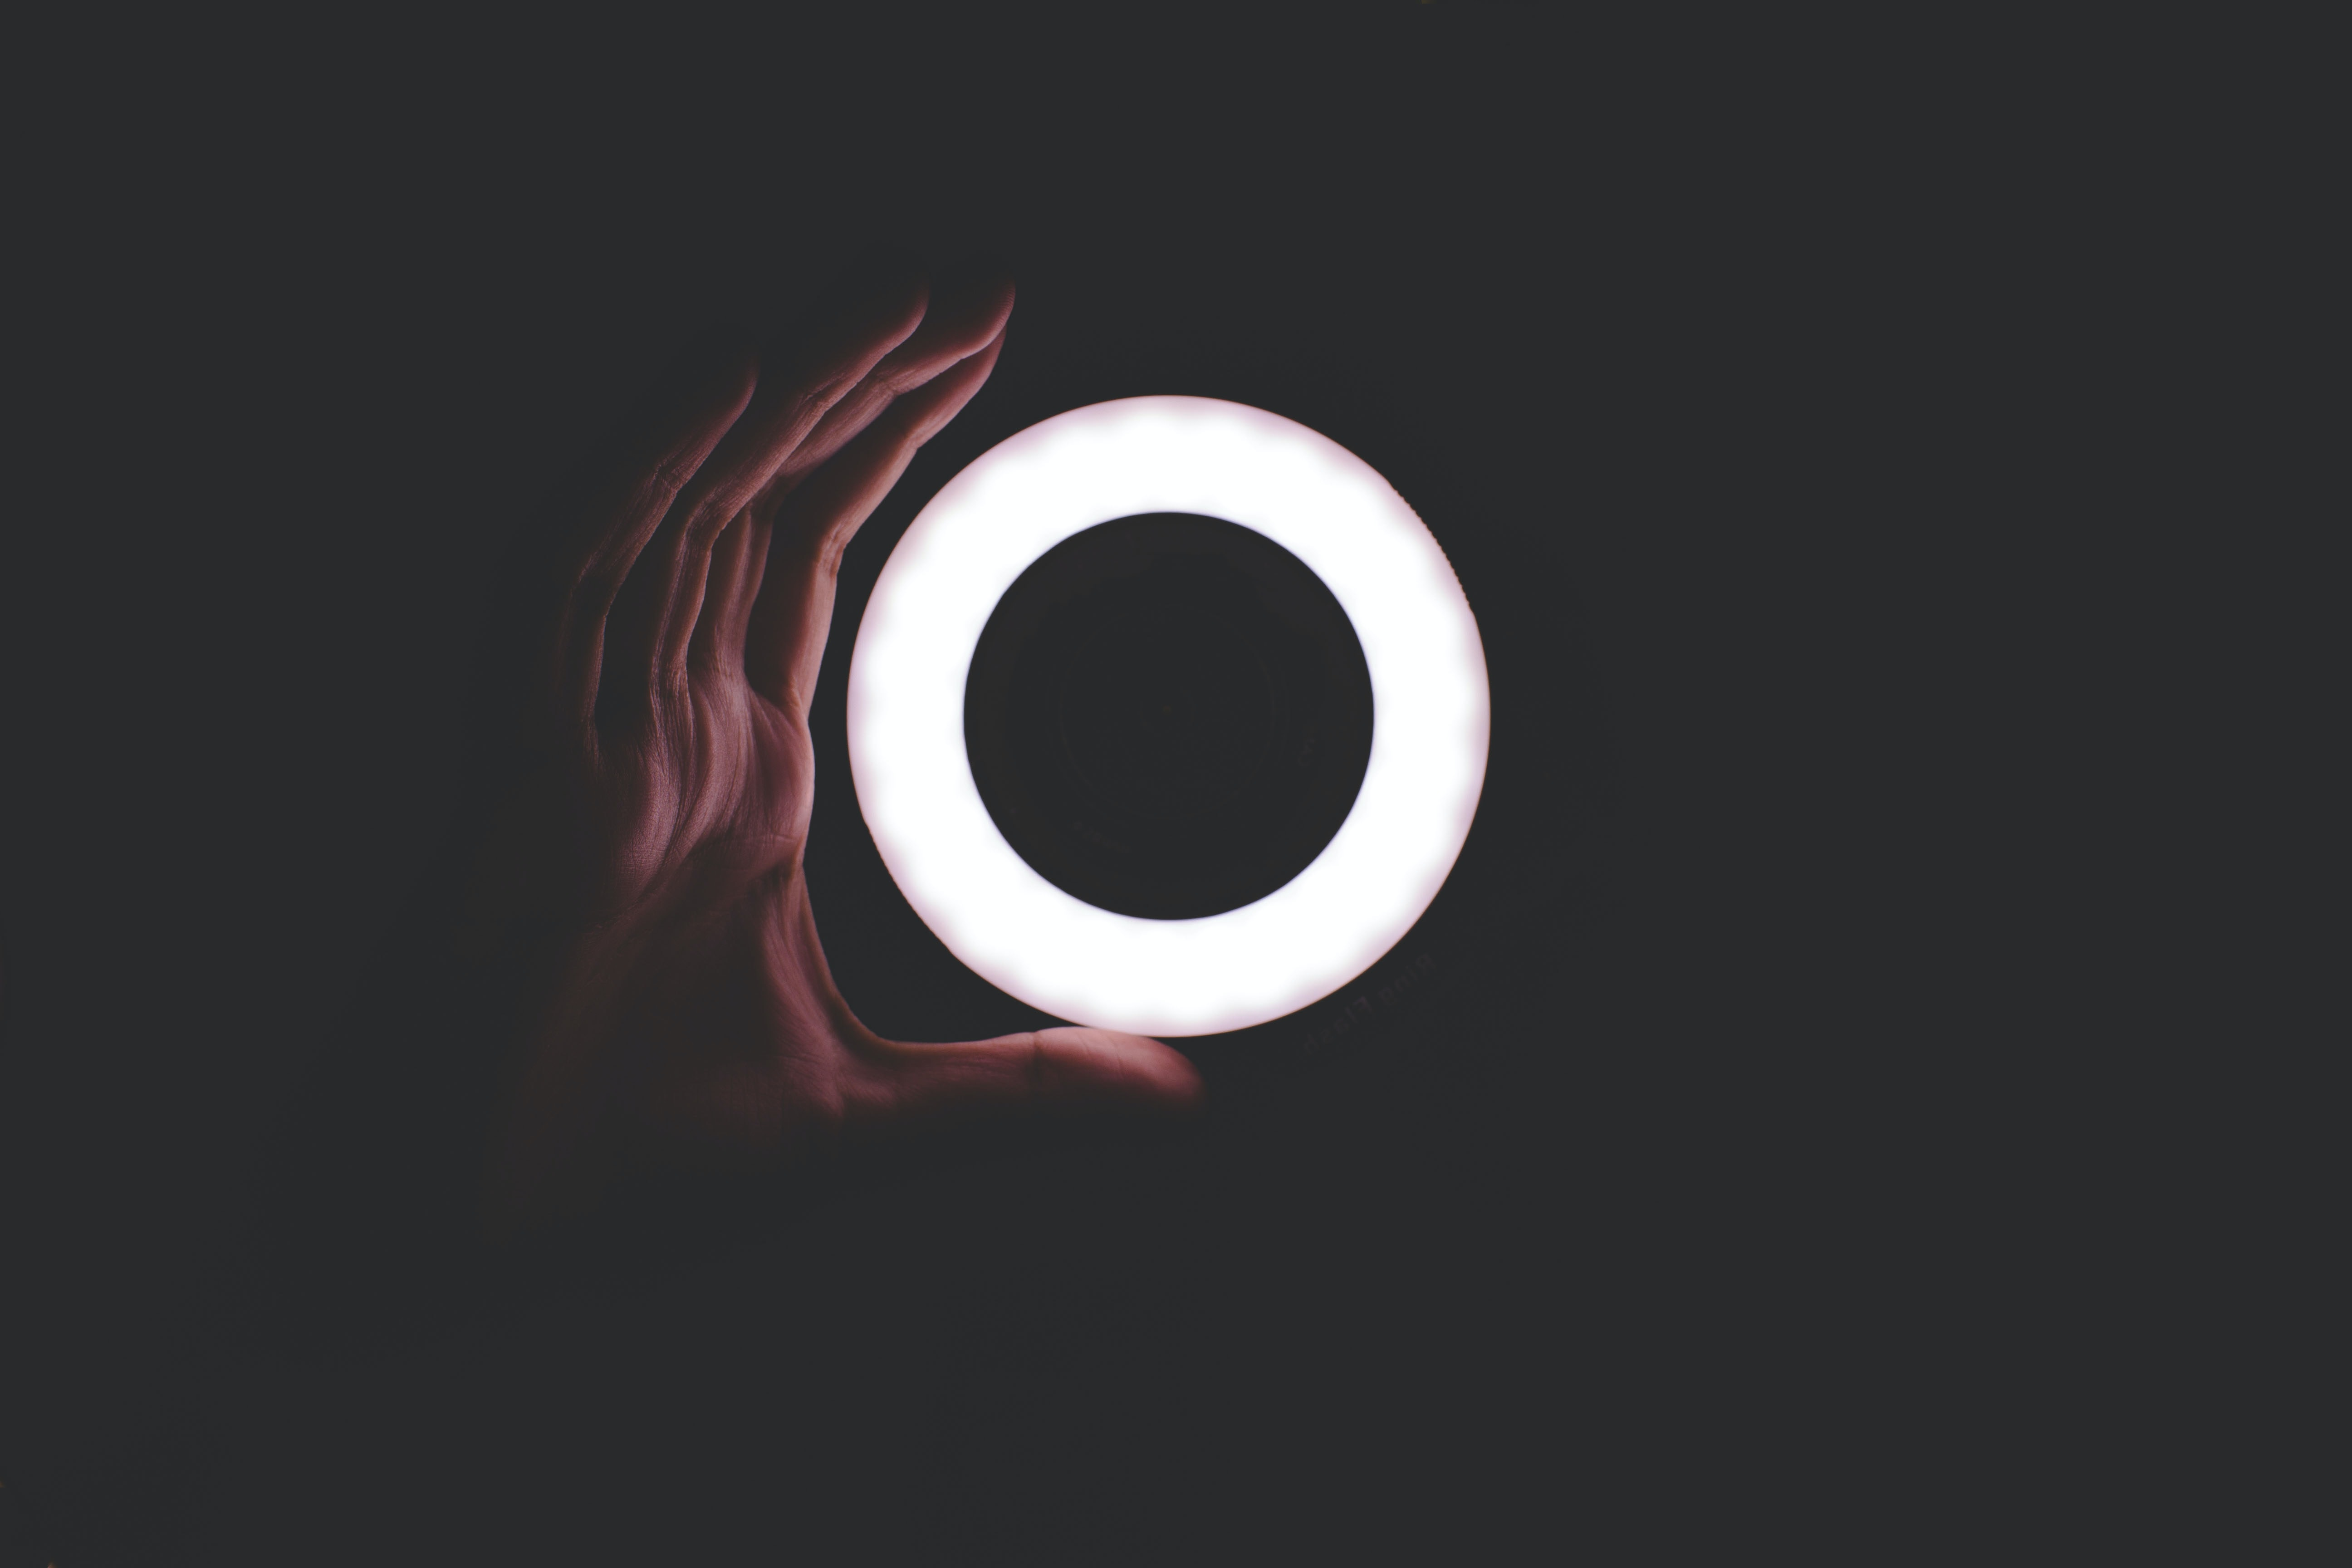 A hand taking the shape of a circle light in a black background